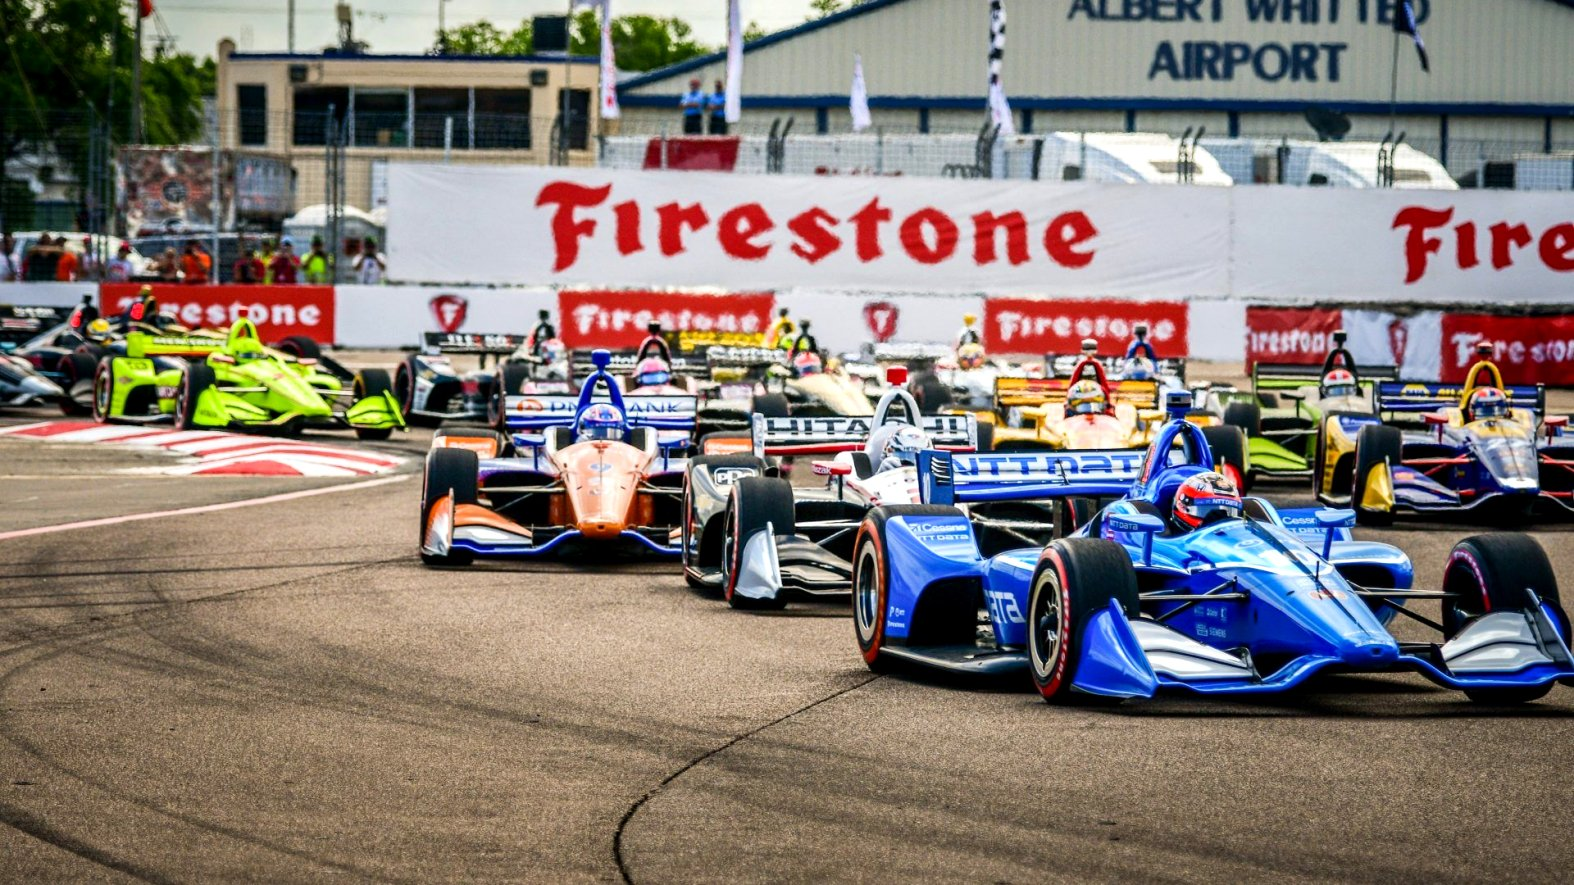 2020 acura grand prix schedule Specs and Review